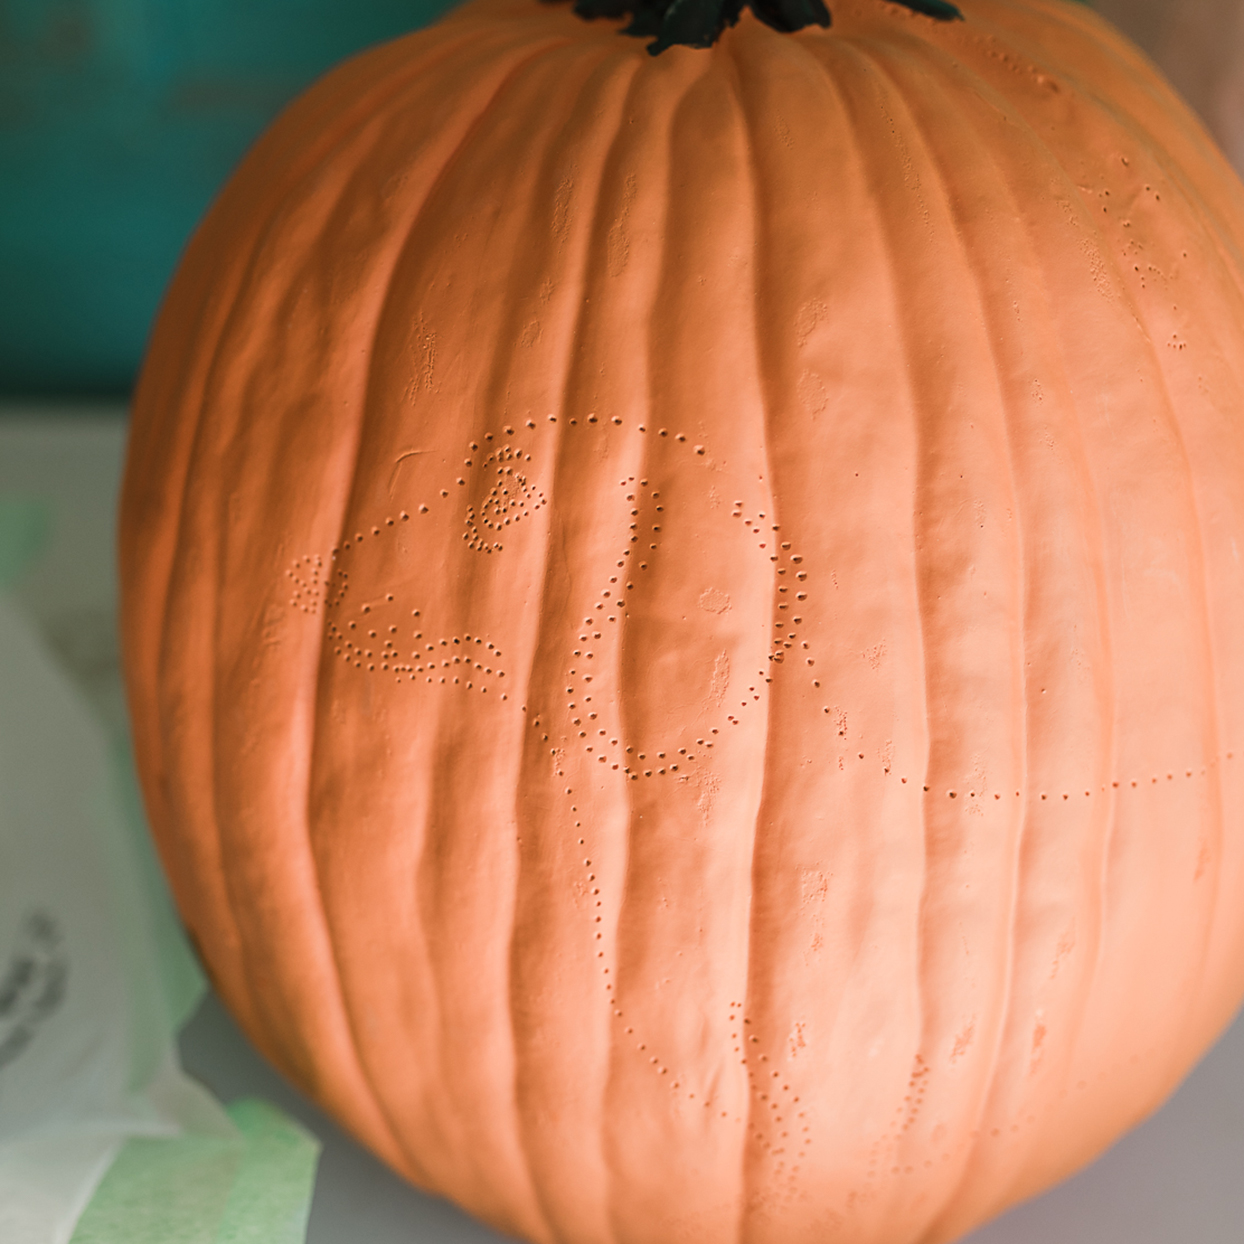 pumpkin carving with pin points in the shape of a dog